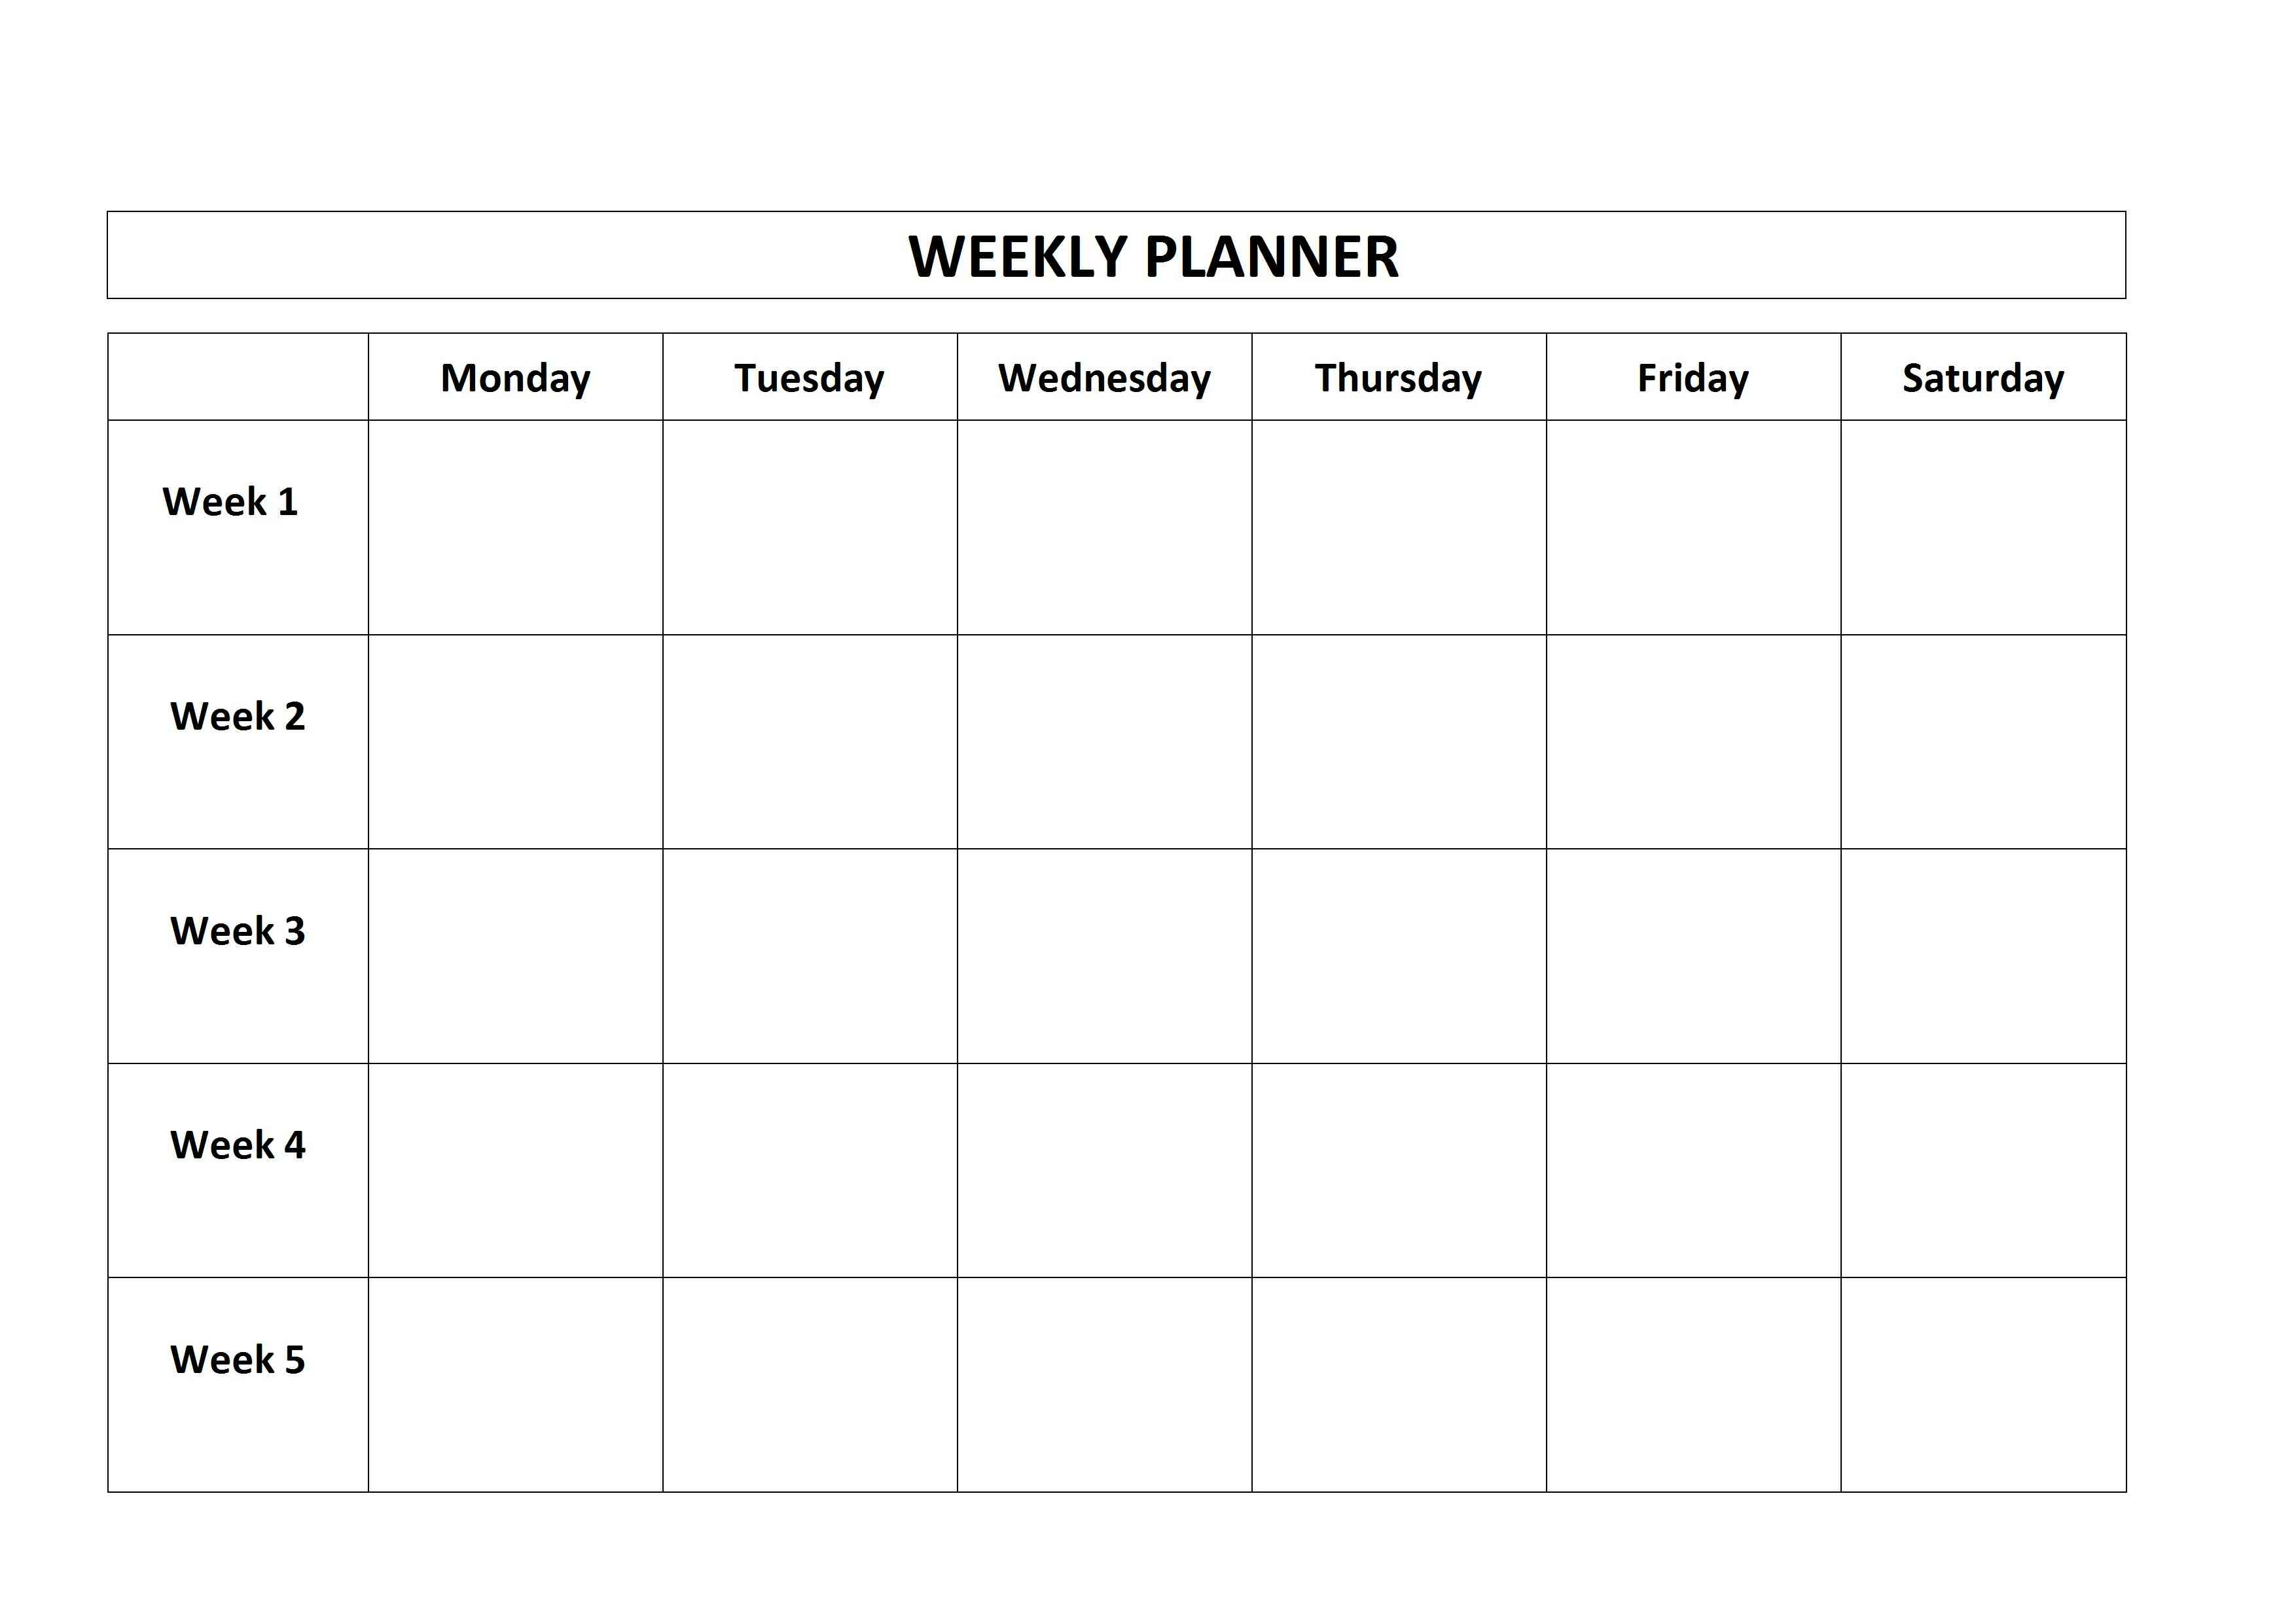 Schedule Template Fillable Weekly Menu Planner Editable Cleaning within Calendar Template Fillable Pdf